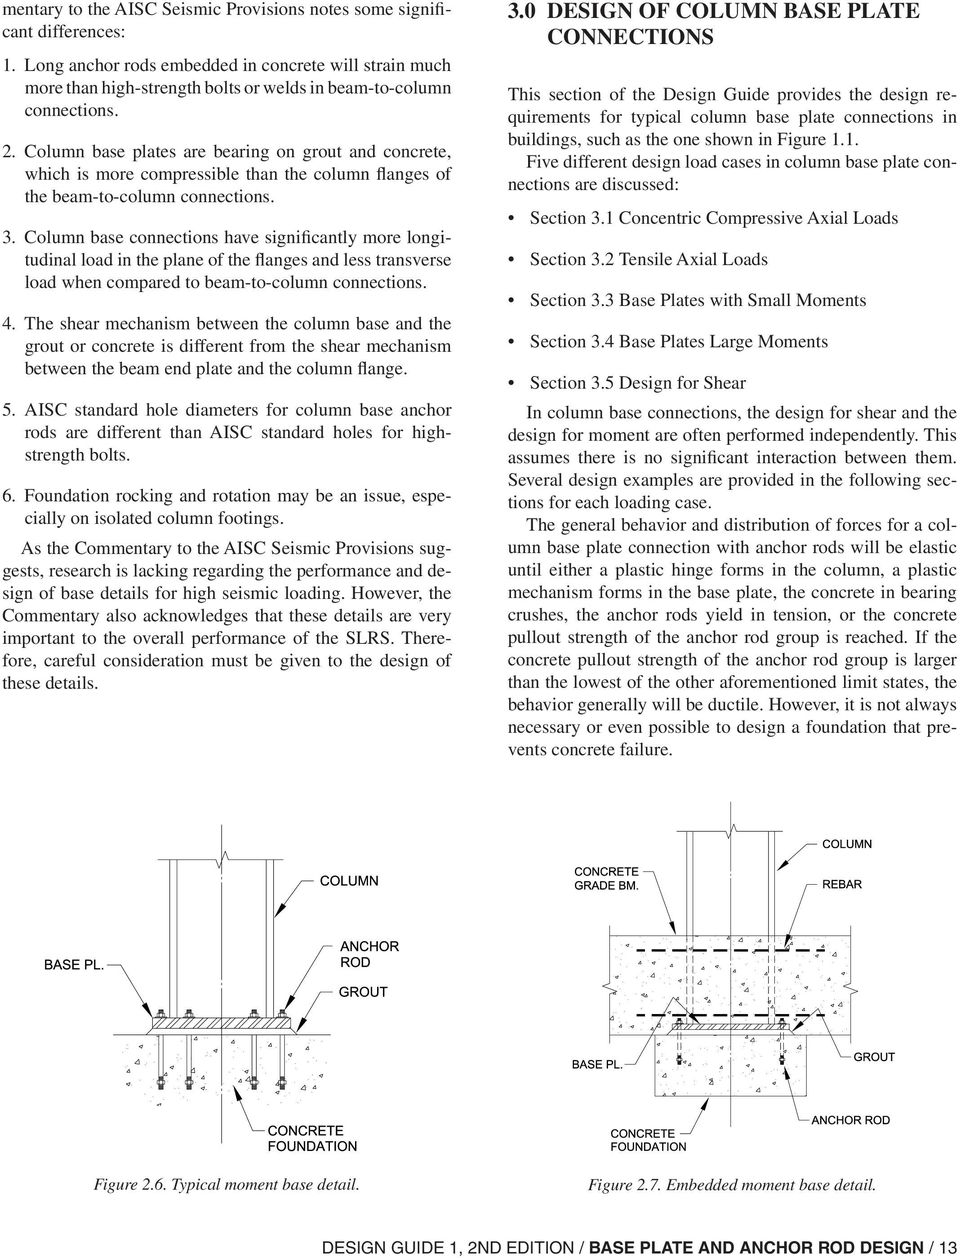 Base Plate and Anchor Rod Design - PDF